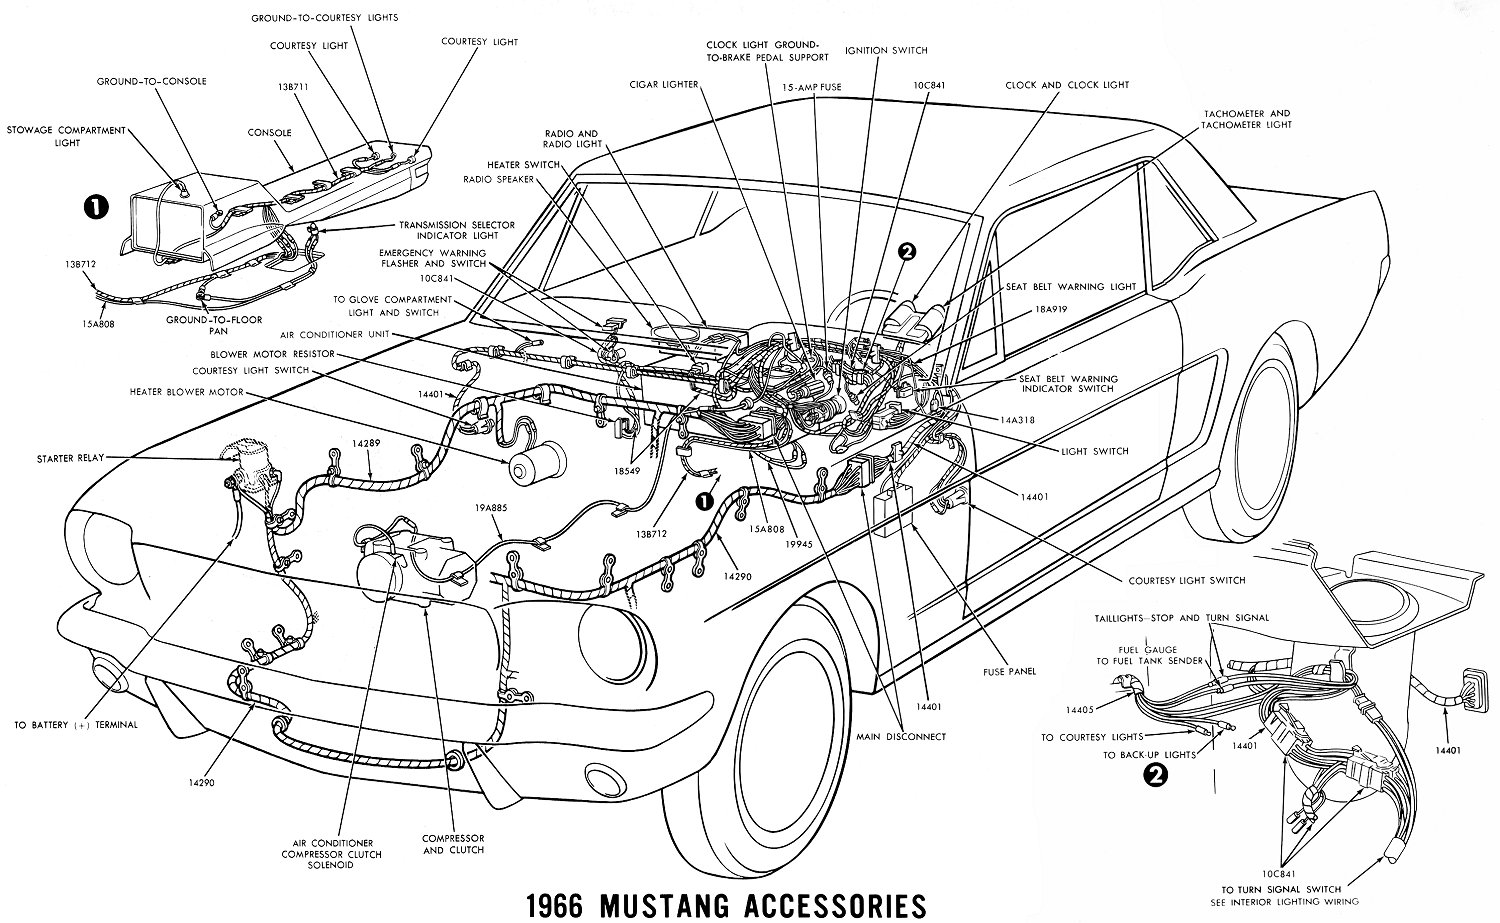 [SCHEMATICS_48YU]  1966 Mustang Wiring Diagrams - Average Joe Restoration | 1966 Ford Air Conditioning Wiring Diagram |  | Average Joe Restoration